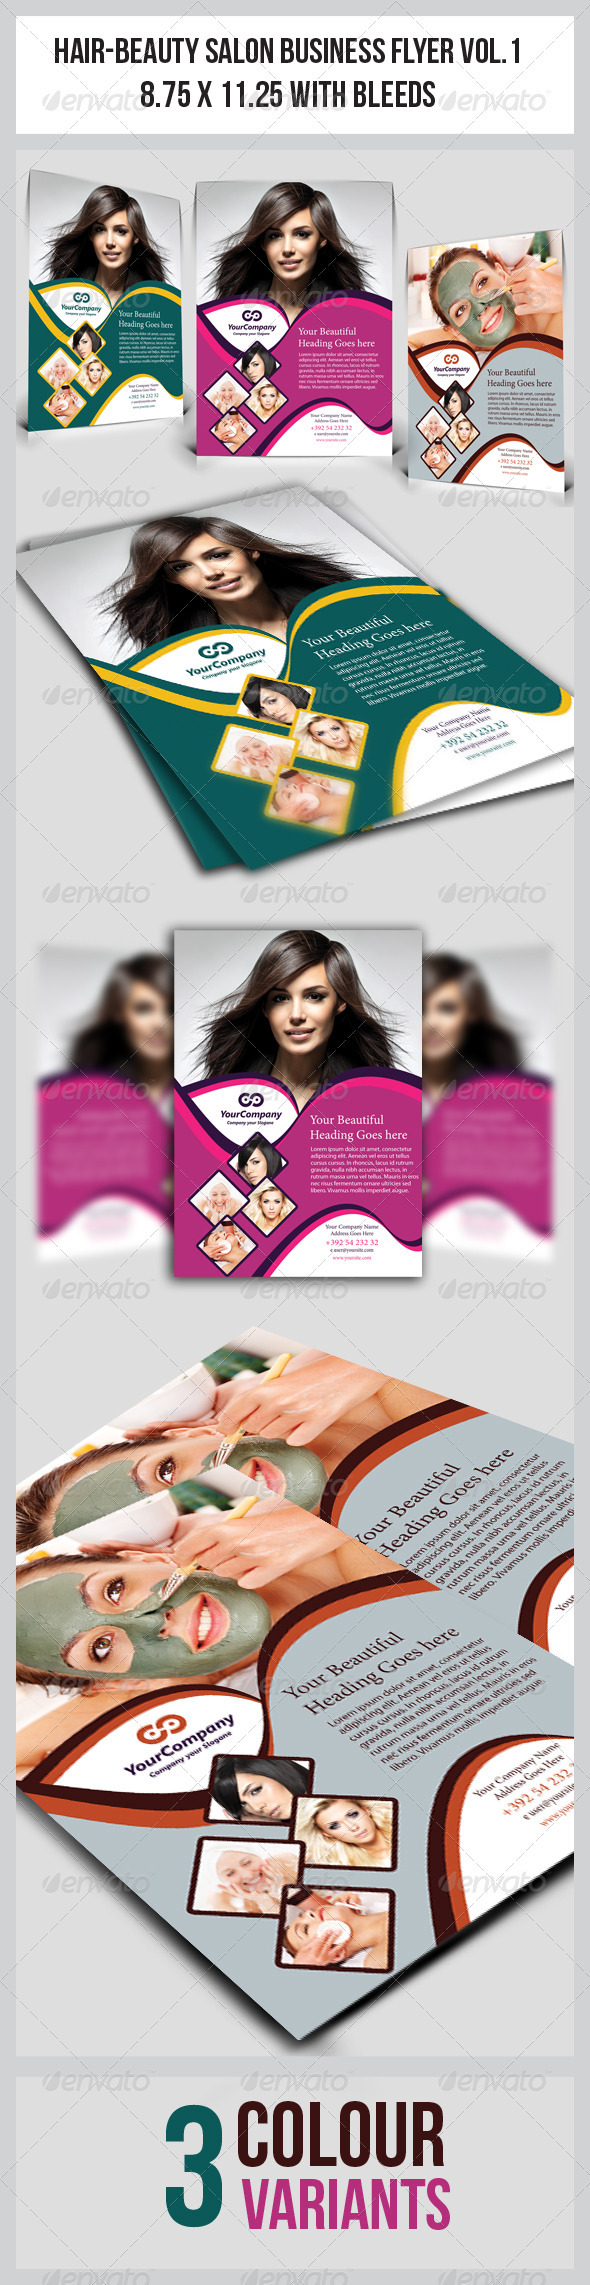 Hair & Beauty Salon Business  Flyer Vol.1